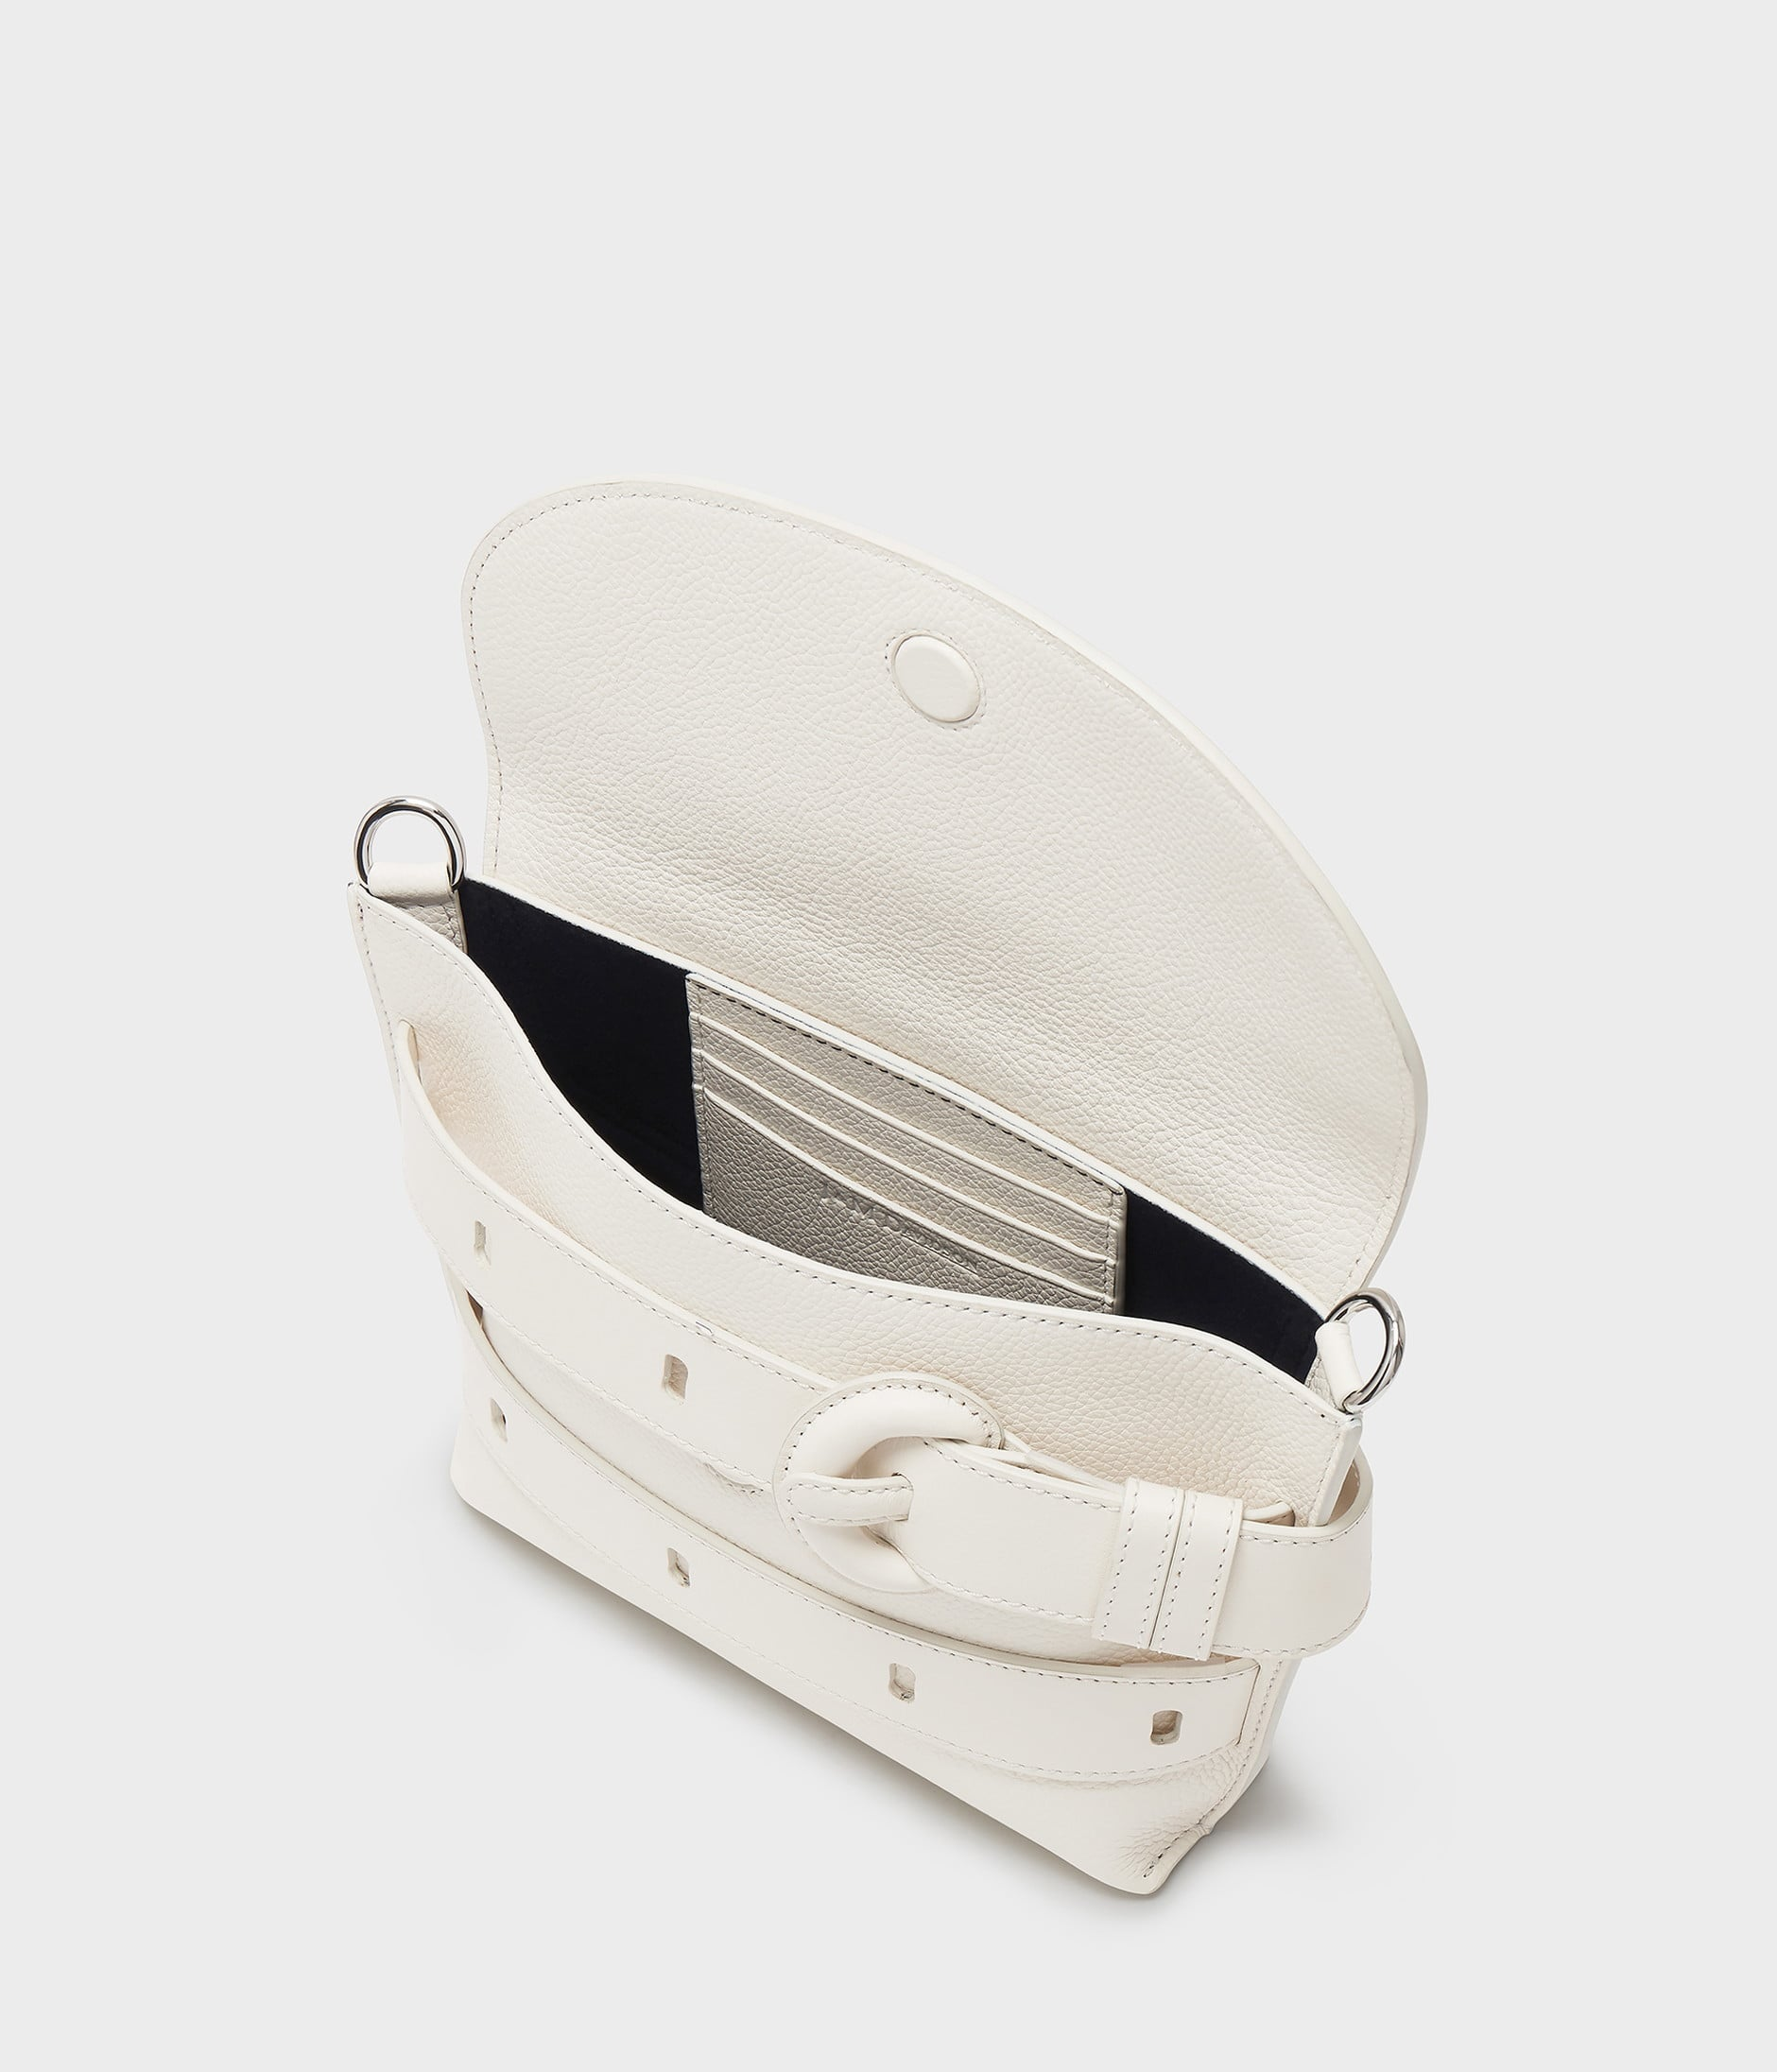 THE BELT POUCH 詳細画像 NEW WHITE 6